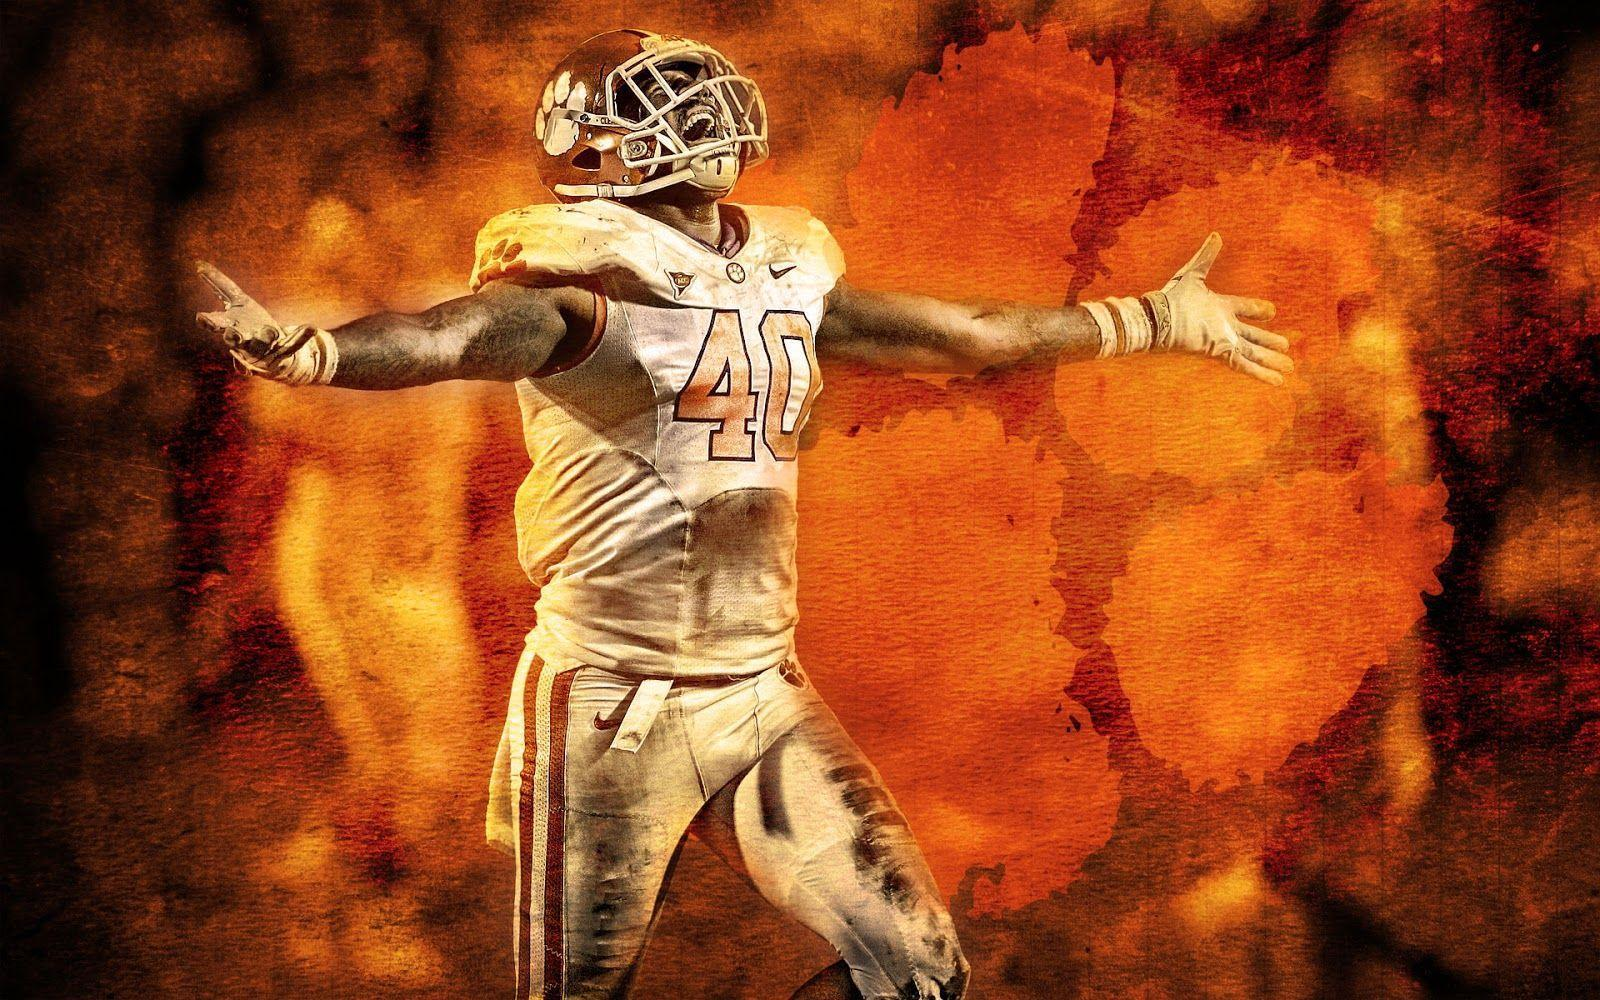 clemson tigers wallpaper - photo #14